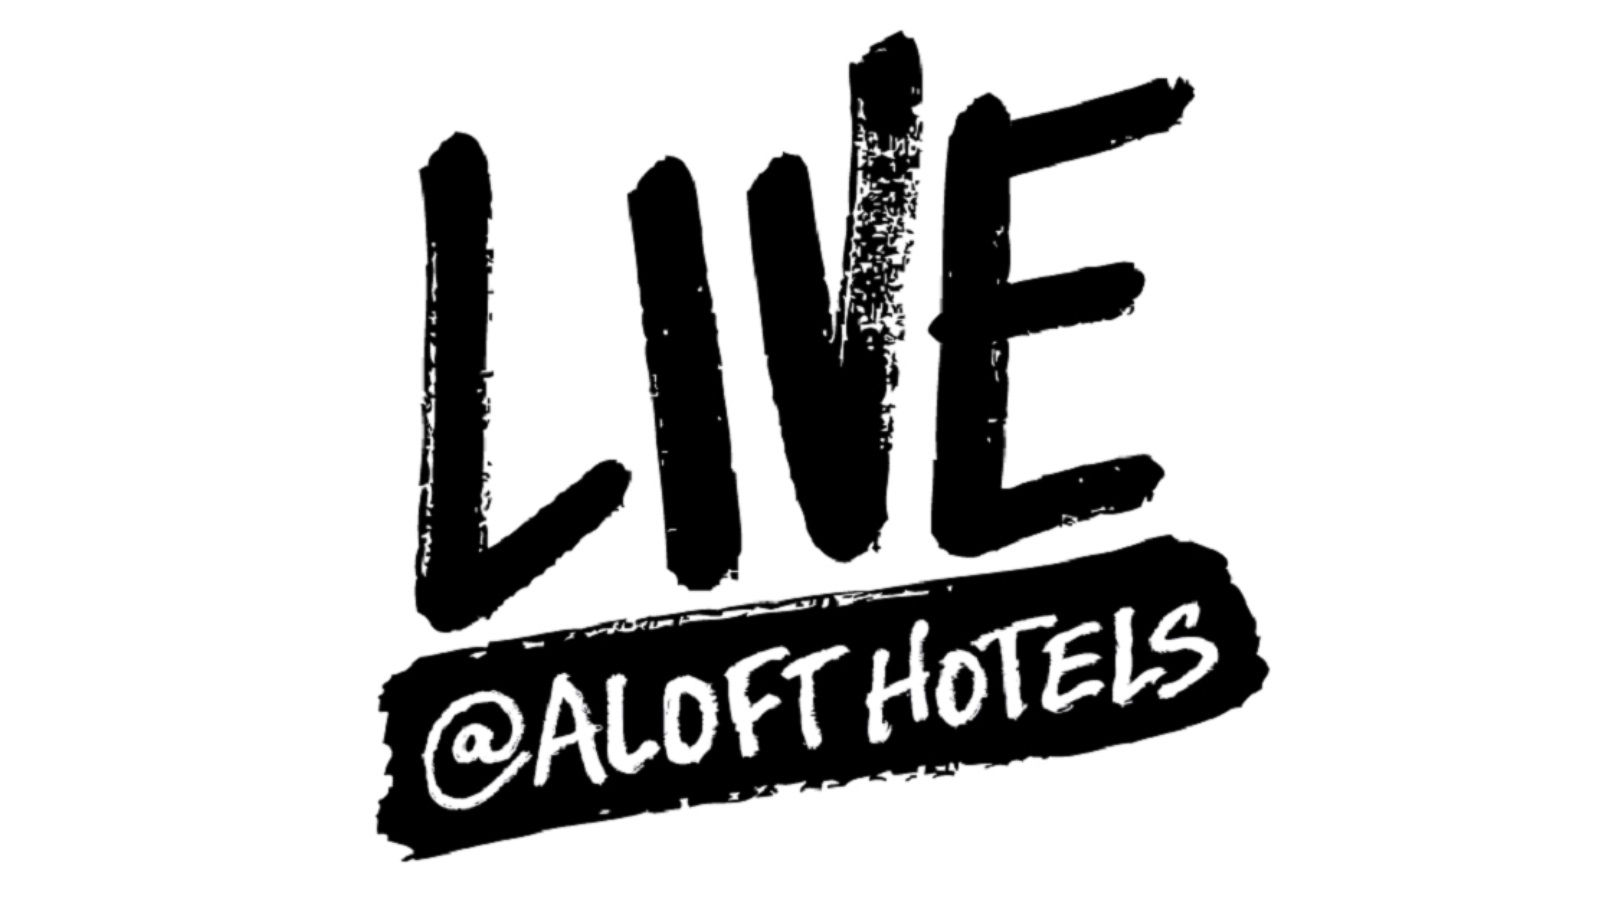 Nashville Bar - Live At Aloft Hotels